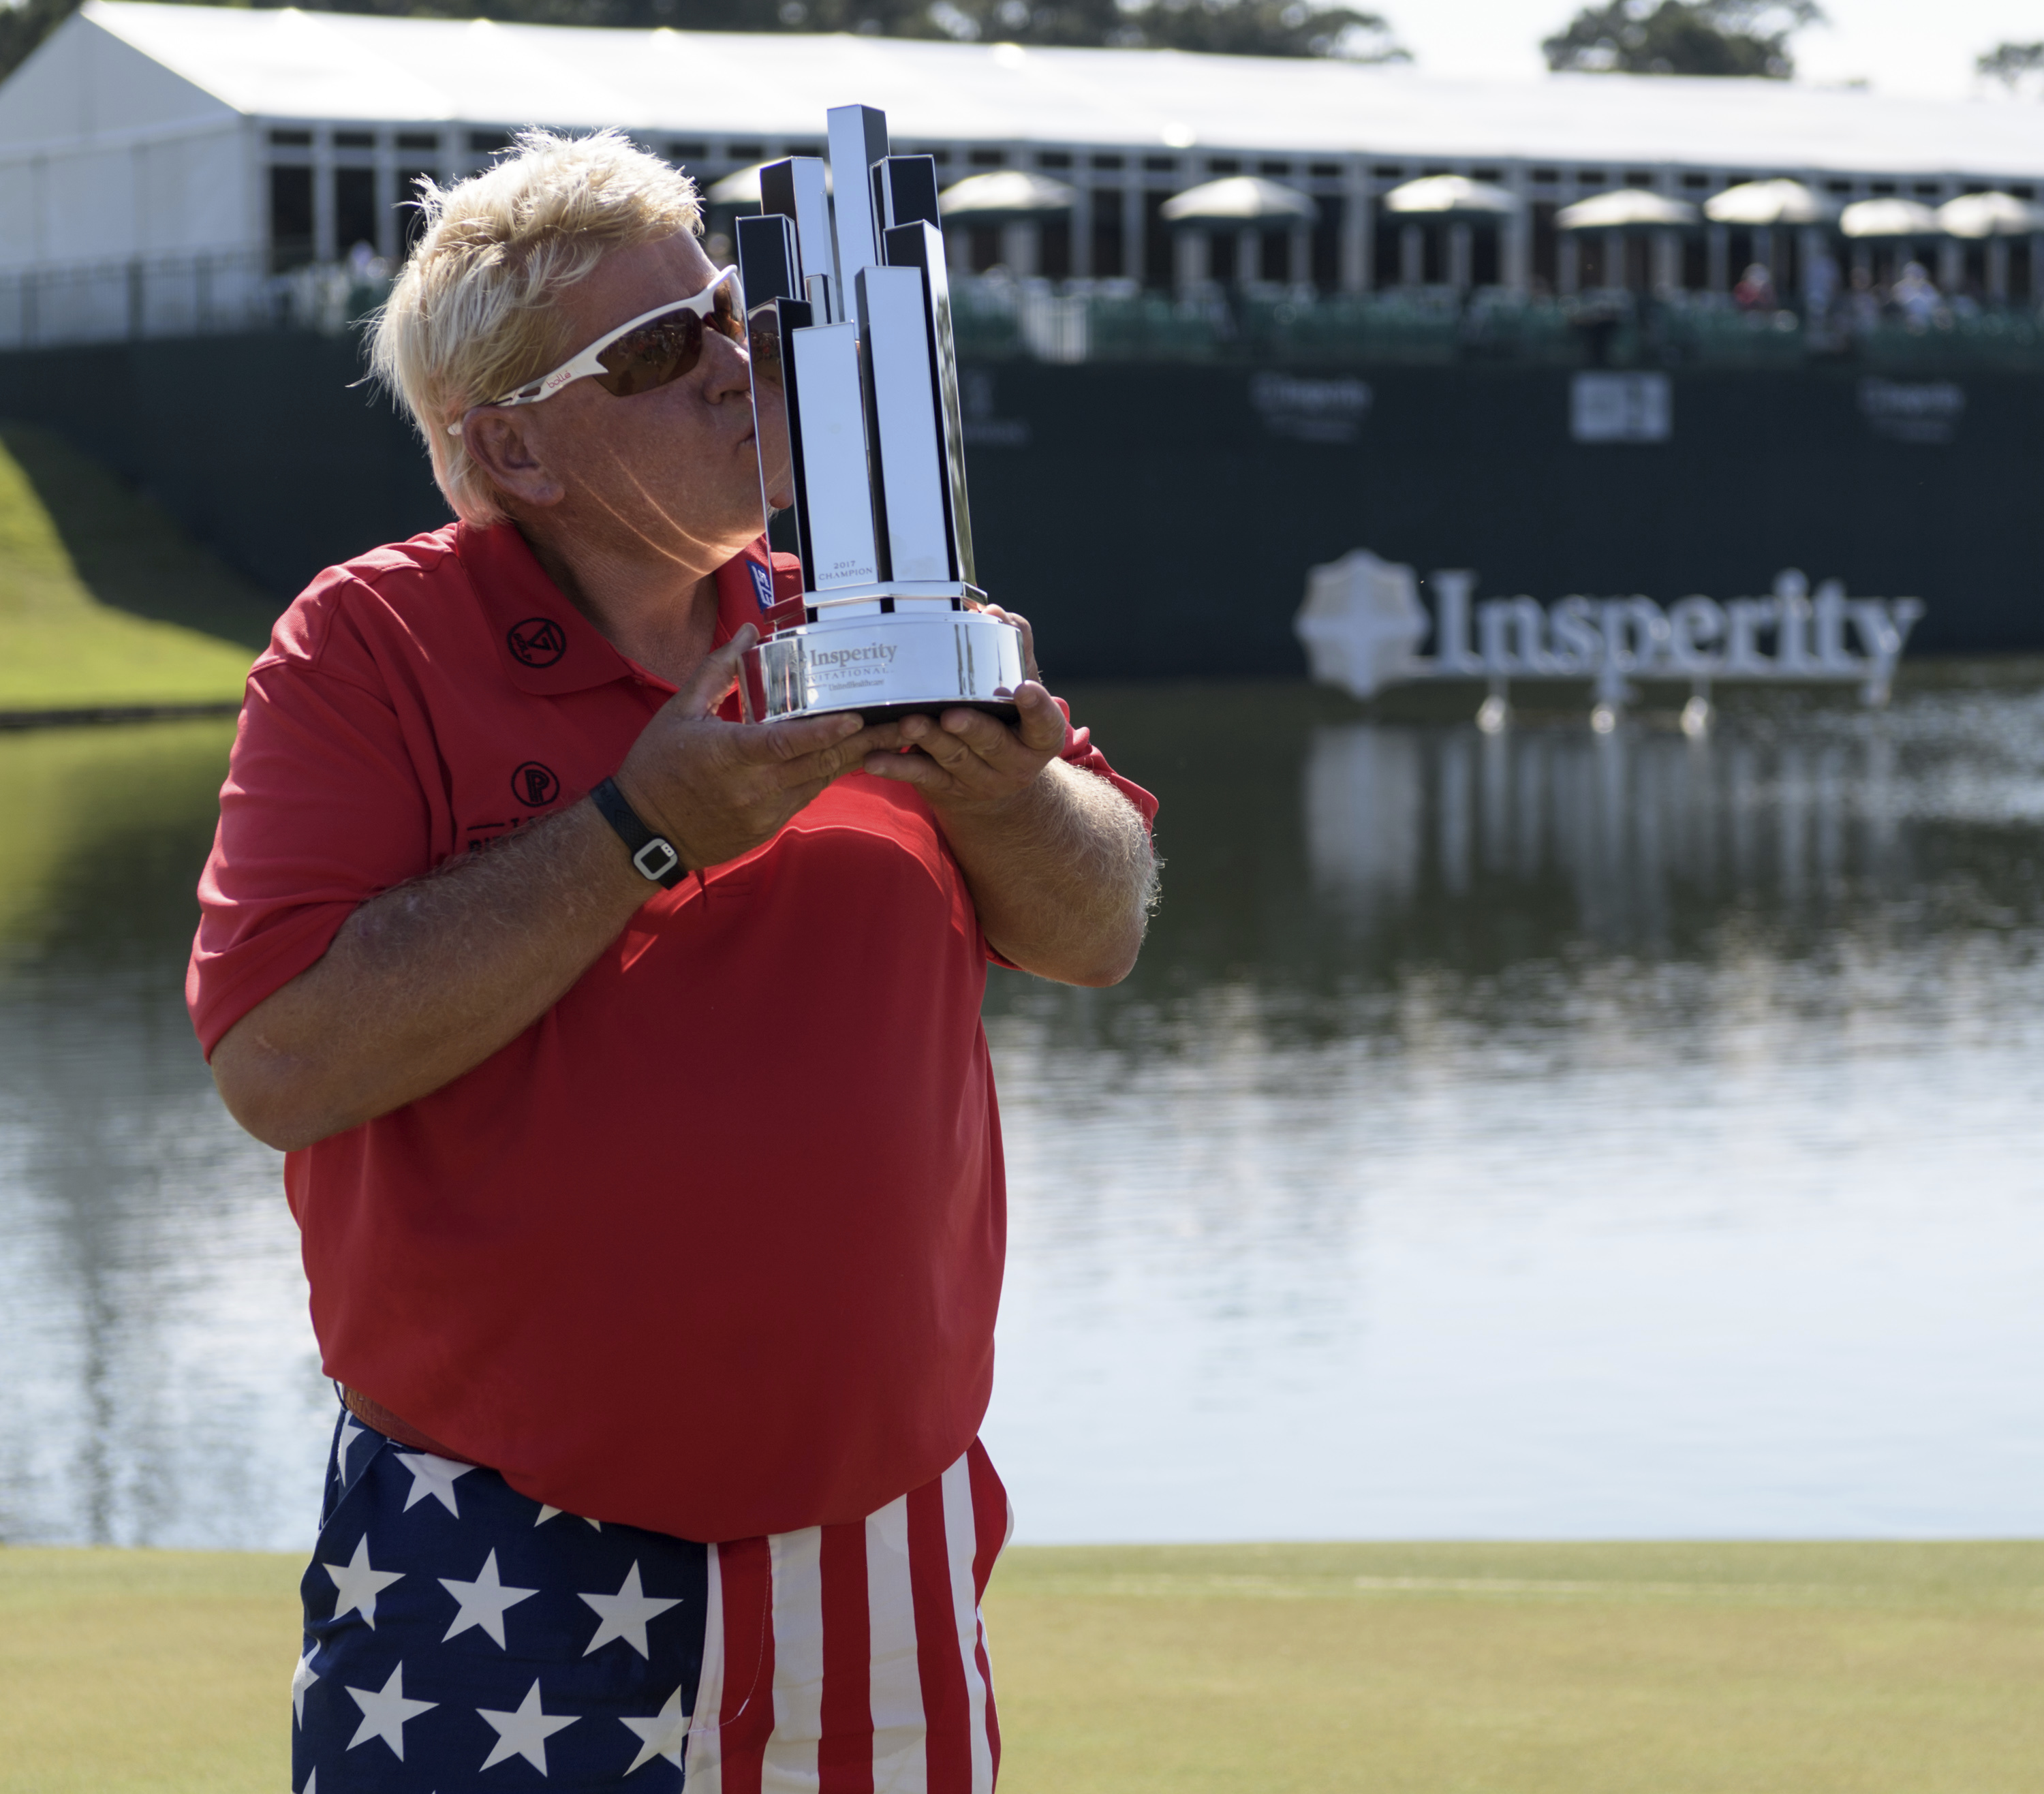 John Daly kisses the trophy after winning the Insperity Invitational golf tournament on Sunday, May 7, 2017, in The Woodlands, Texas. (Wilf Thorne/Houston Chronicle via AP)